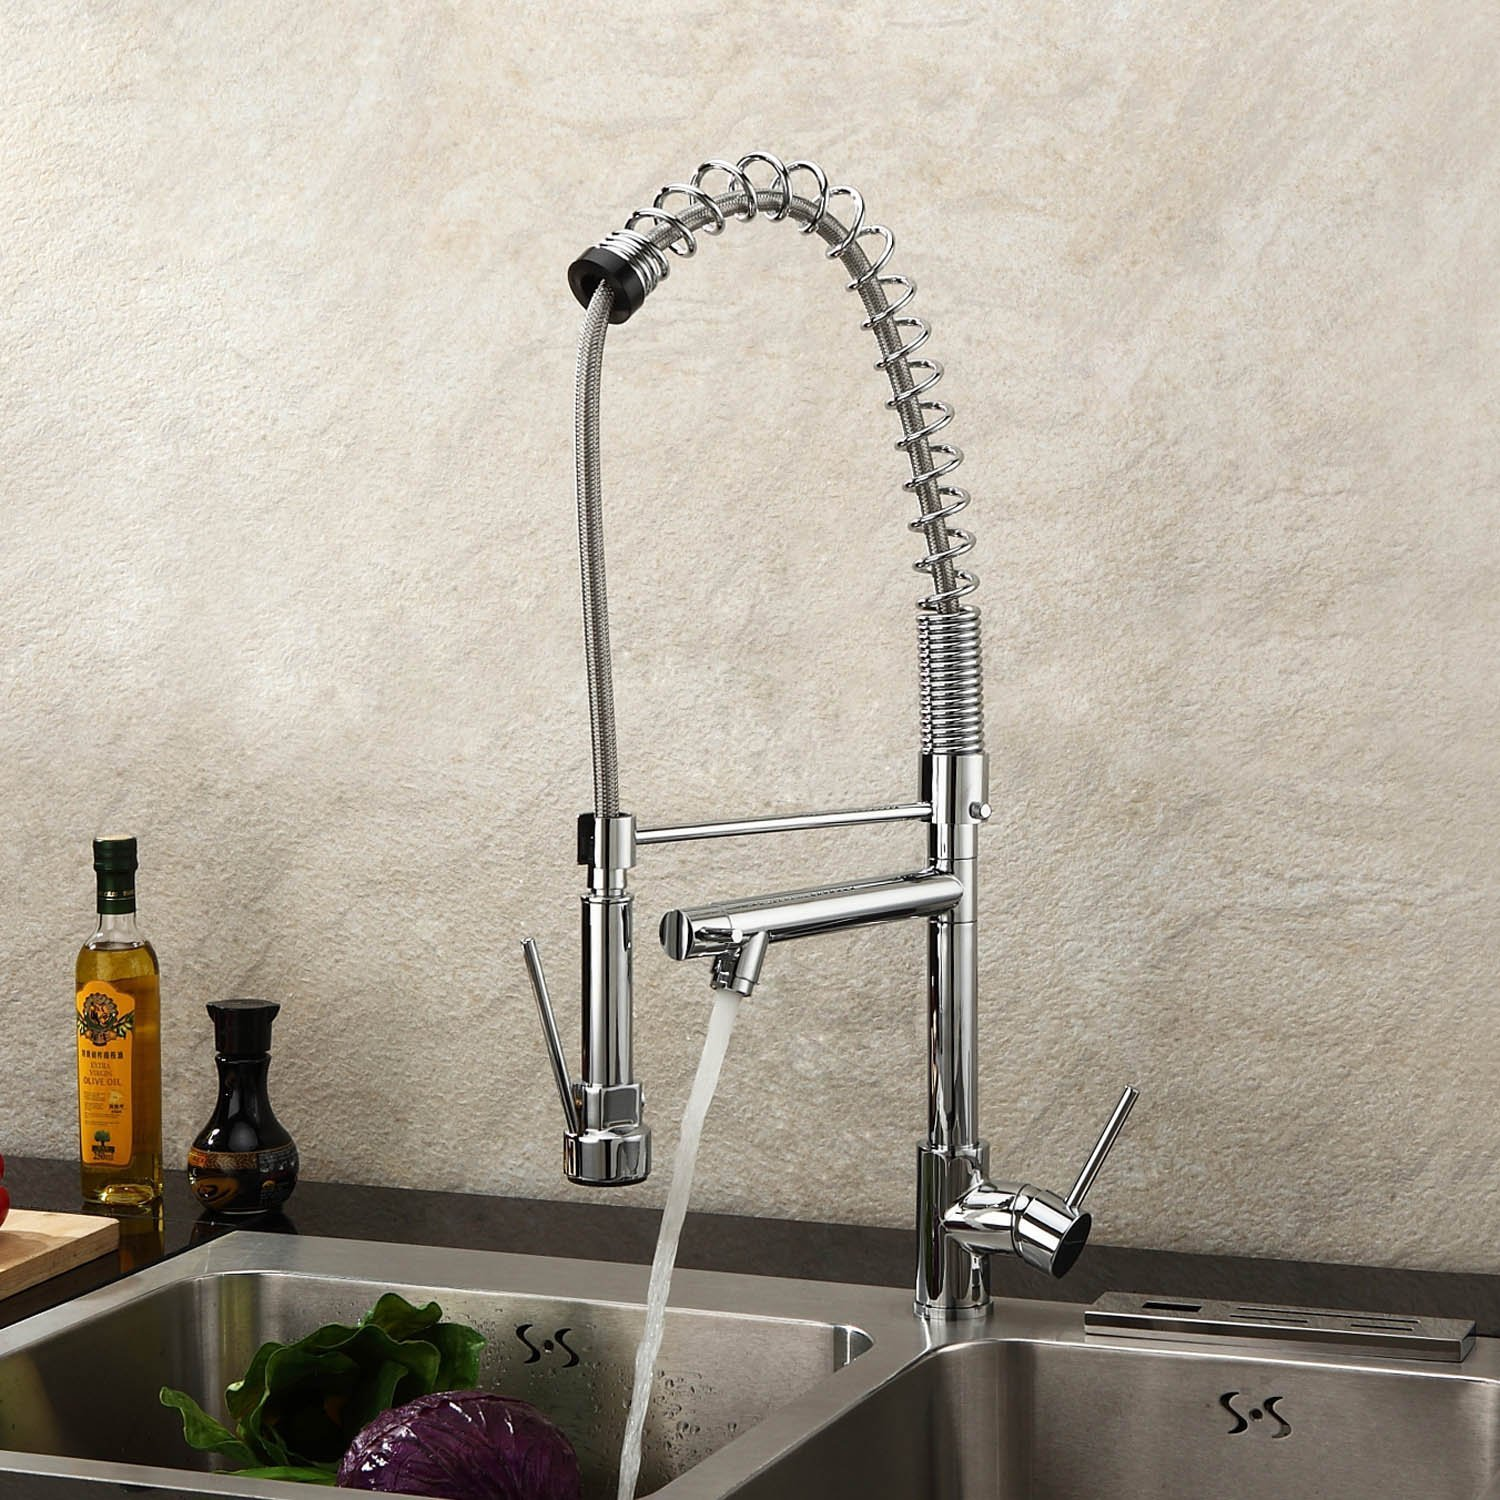 Lightinthebox Deck Mount Single Handle Solid Brass Spring Kitchen Faucet  With Two Spouts Discount Kitchen Sink Faucet With Pull Out Spray Pull Down  Sprayer ...